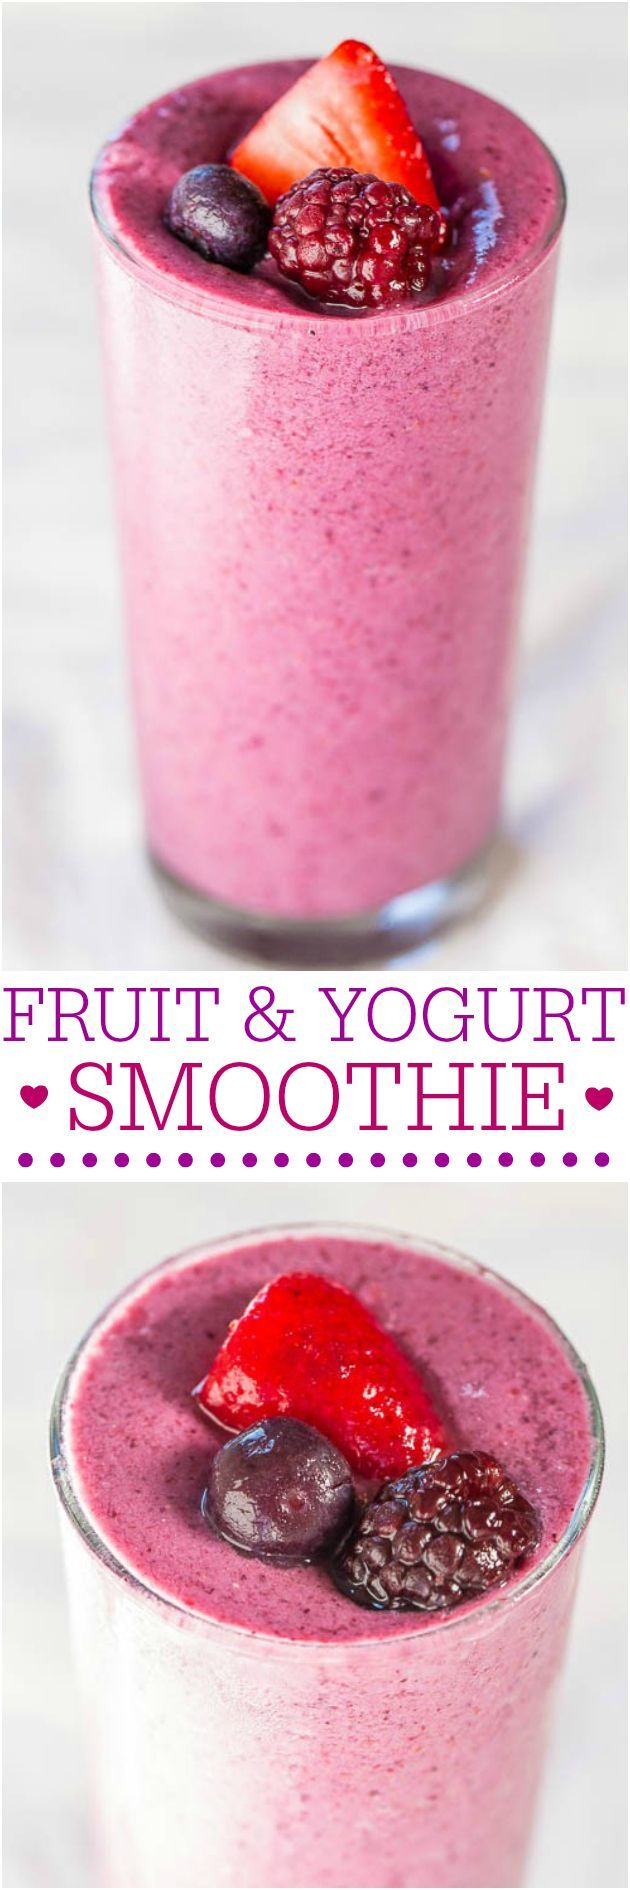 Fruit and Yogurt Smoothie - Just 3 ingredients and no added sugar in this sweet and creamy smoothie! Love it when healthy tastes so good!!